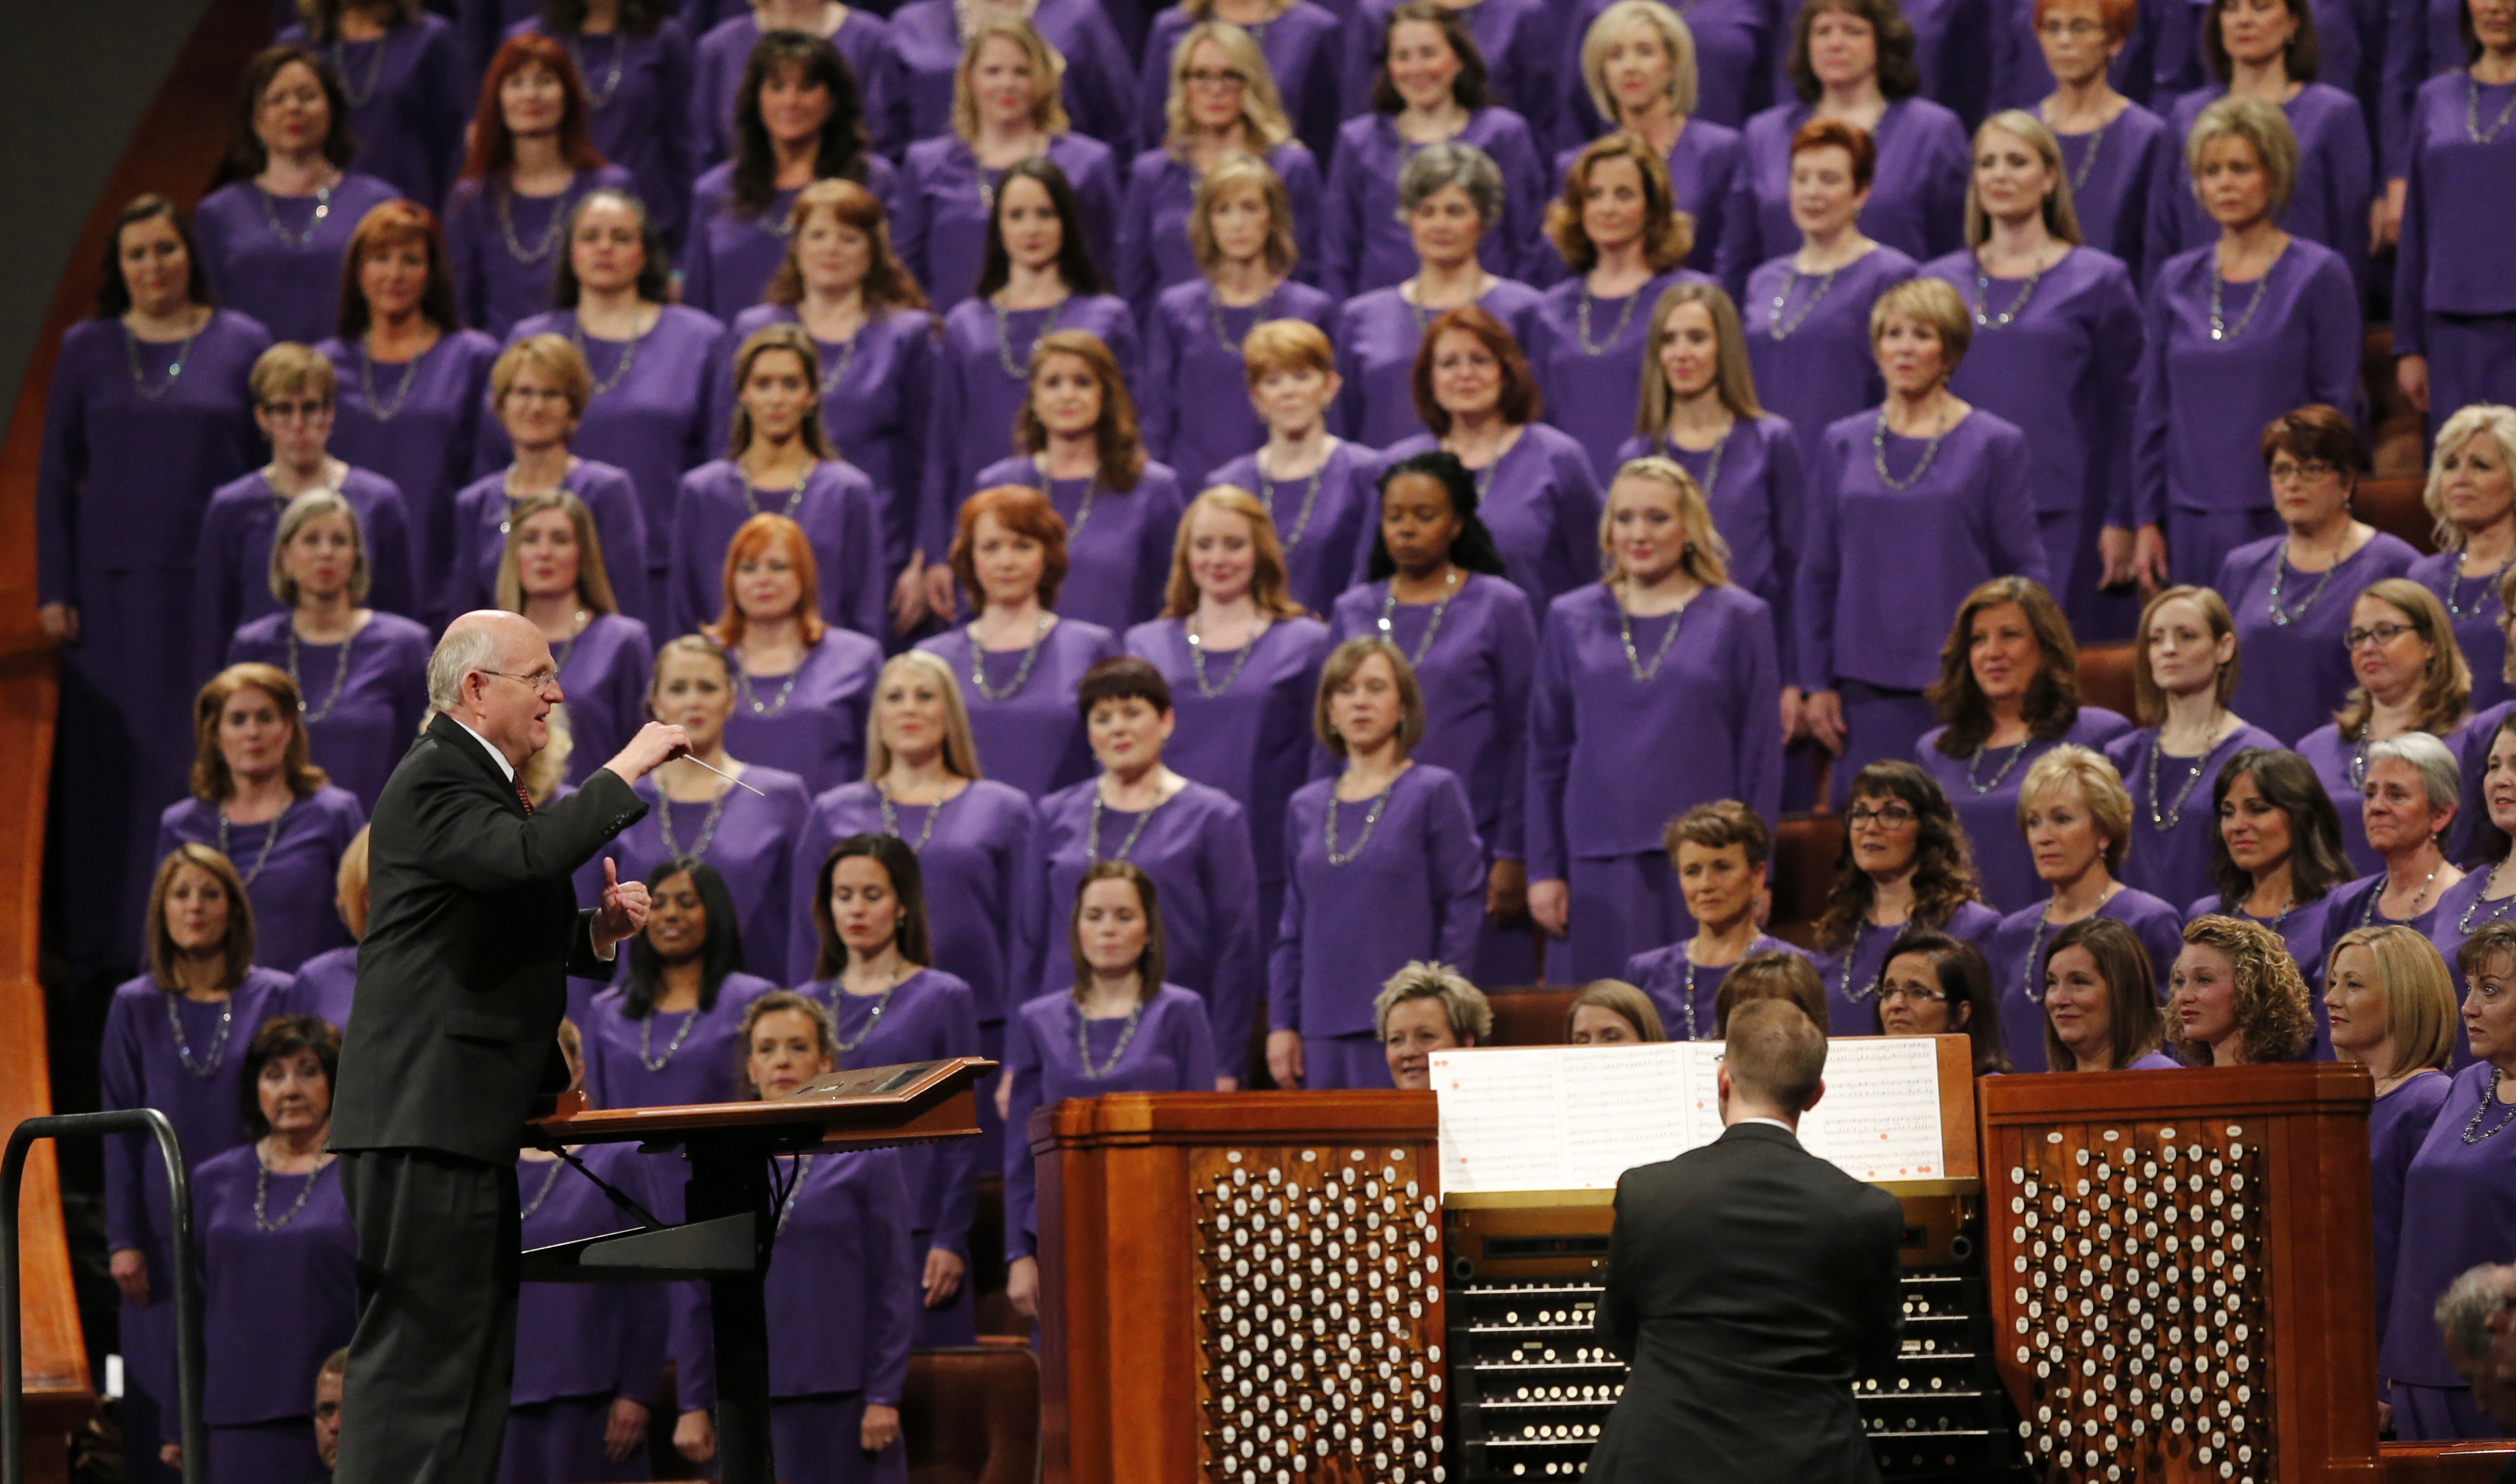 The Tabernacle Choir at Temple Square performs during the twice-annual conference of The Church of Jesus Christ of Latter-day Saints, Oct. 6, 2018, in Salt Lake City.